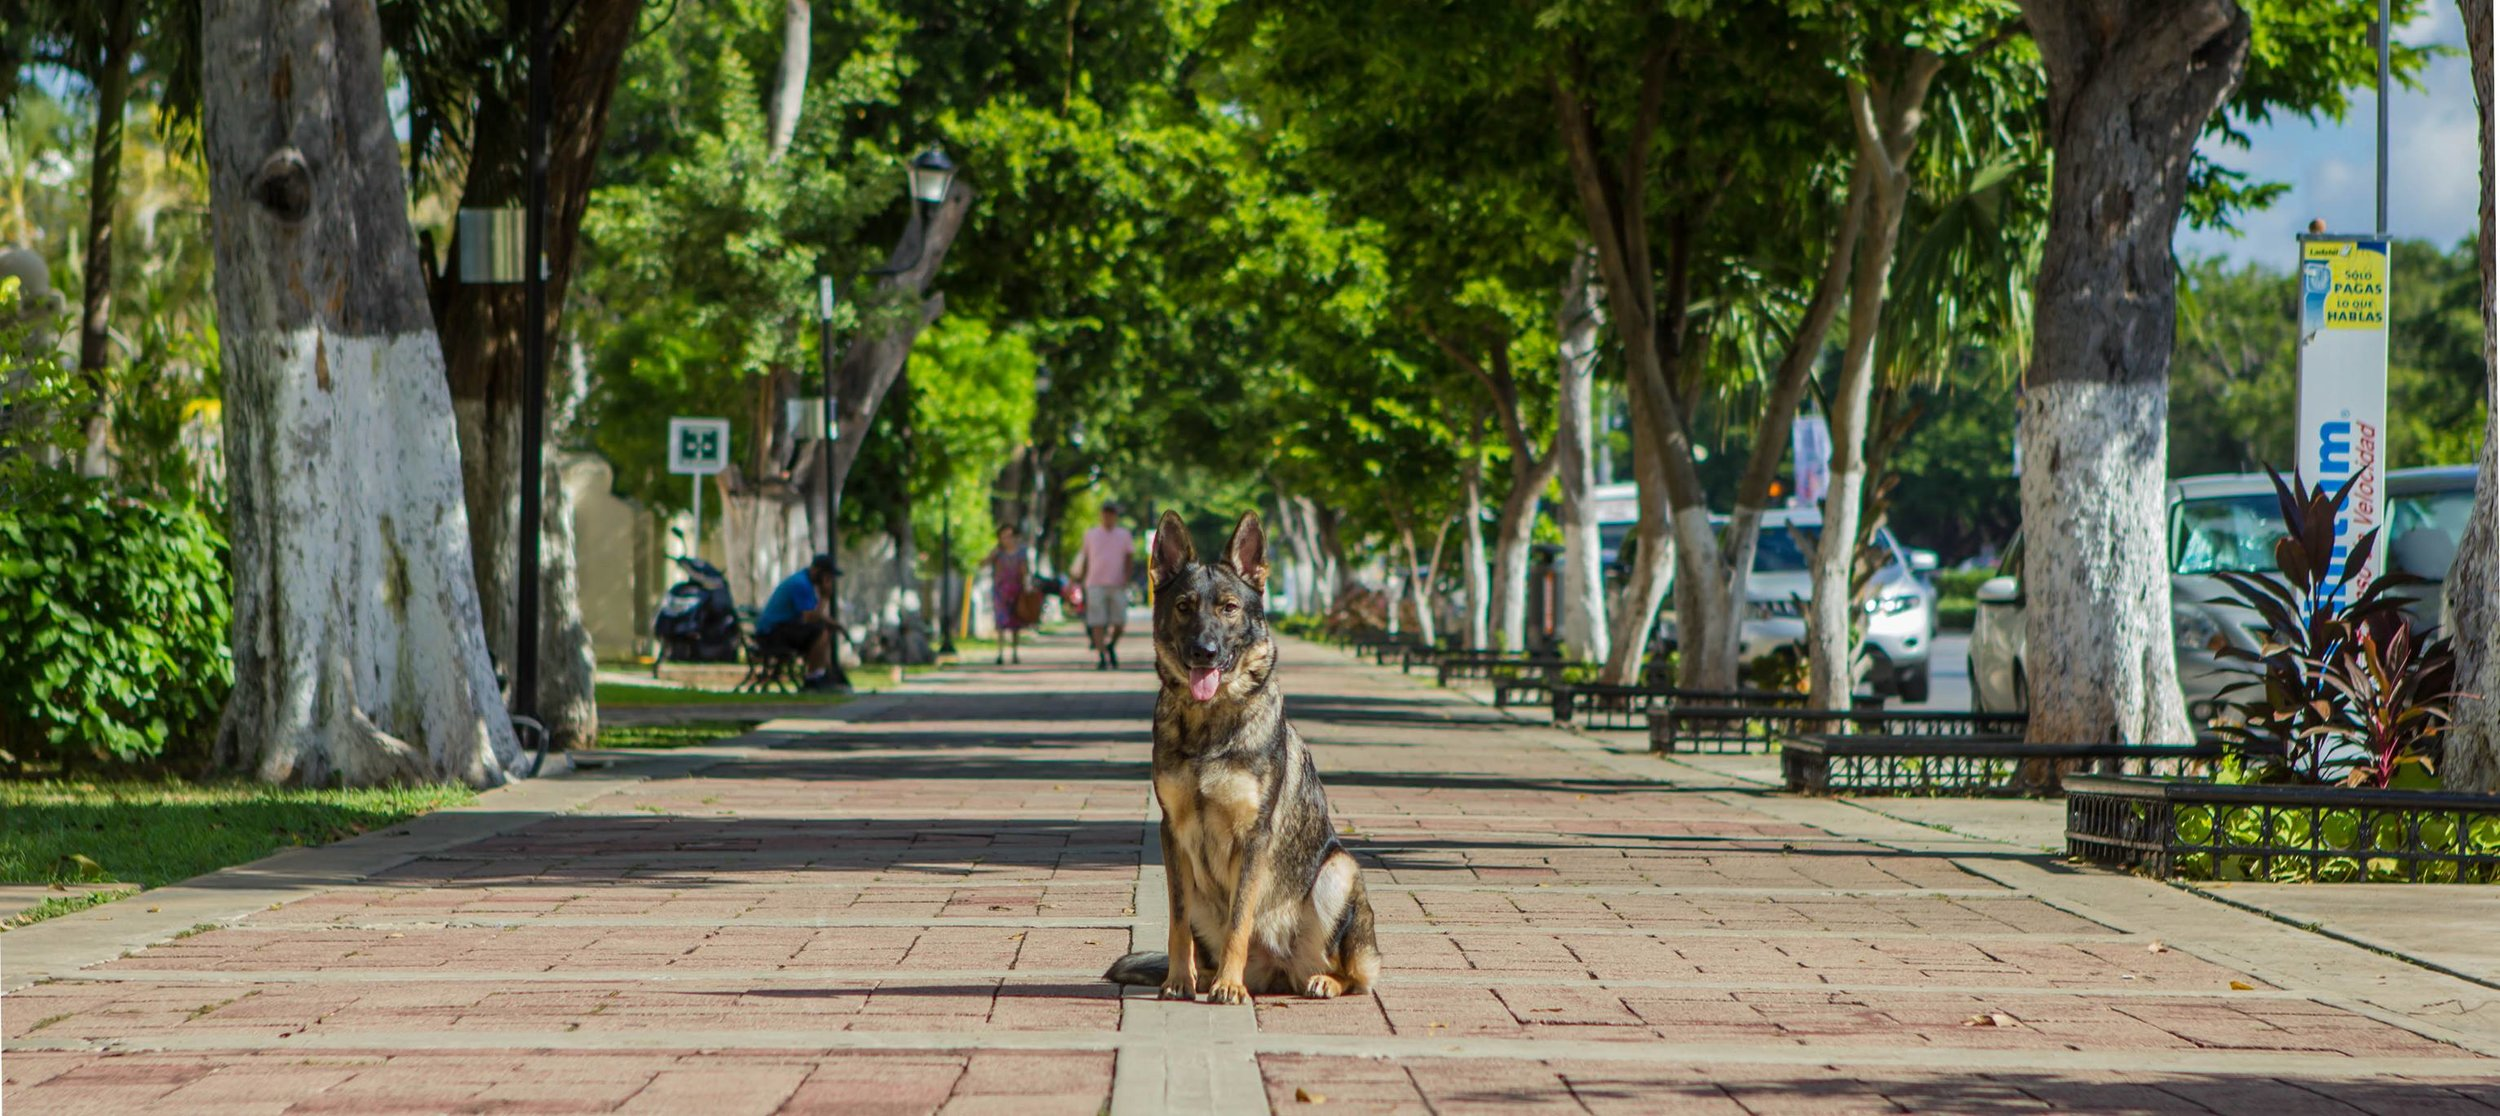 Downtown Merida Mexico.